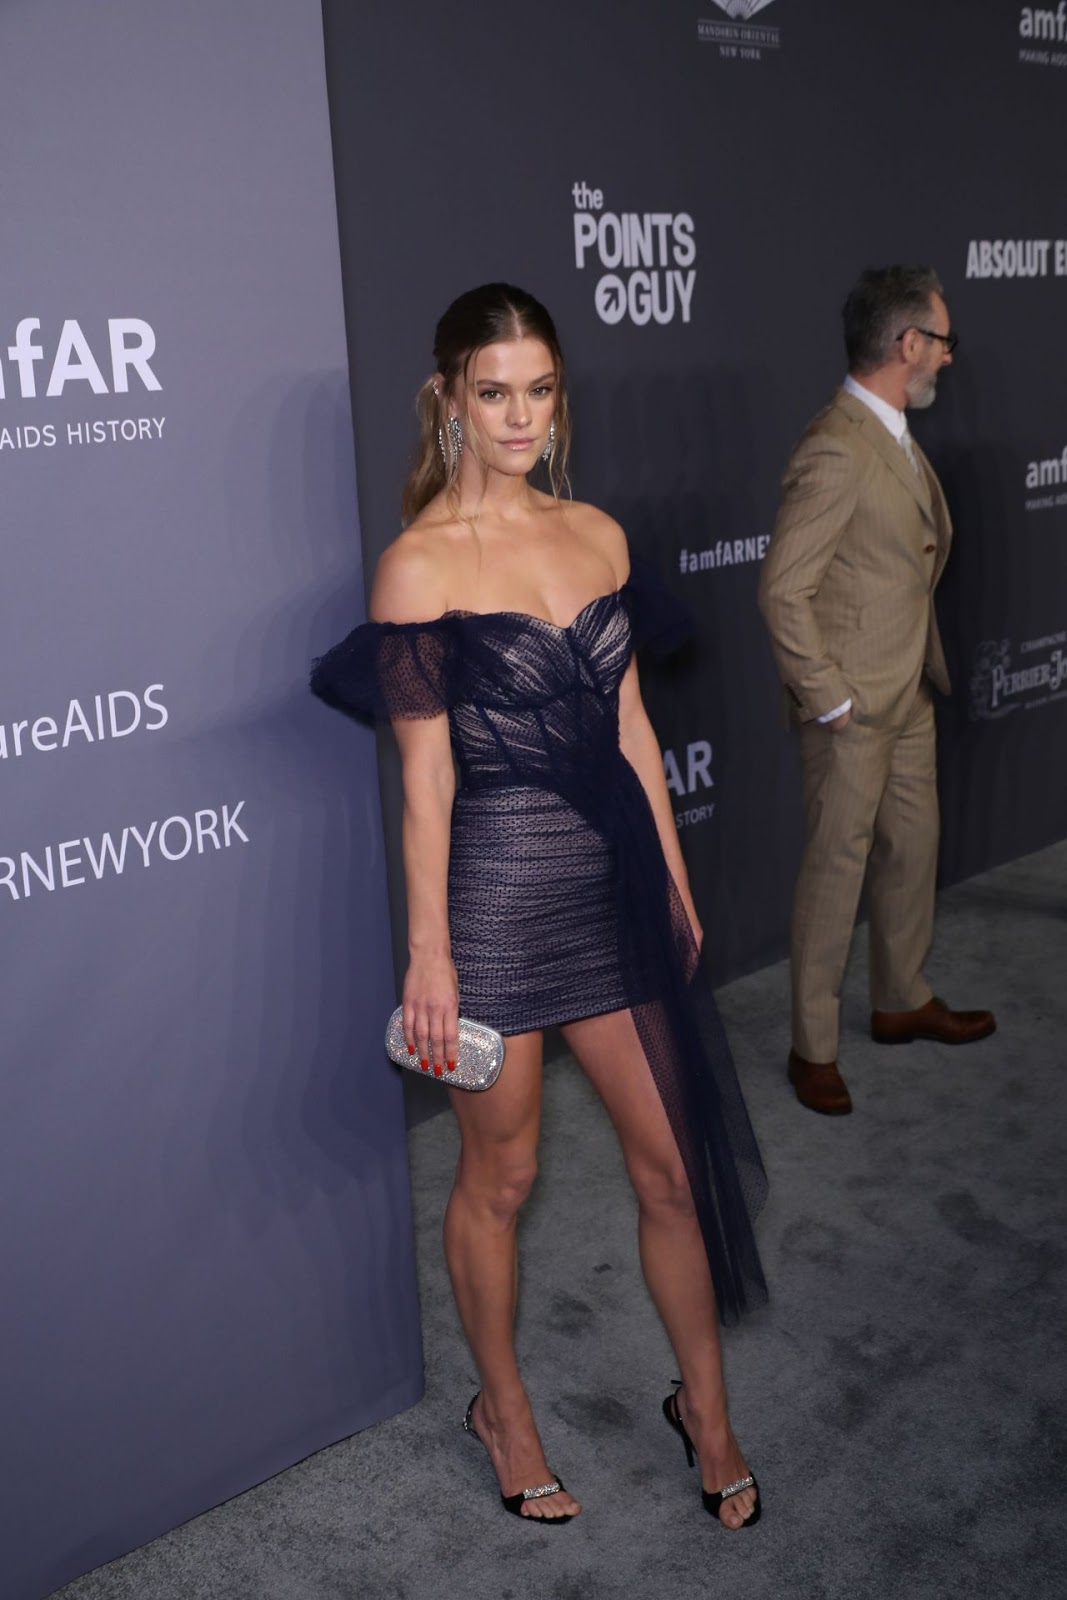 Nina Agdal - amfAR New York Gala in NYC - 02/06/2019